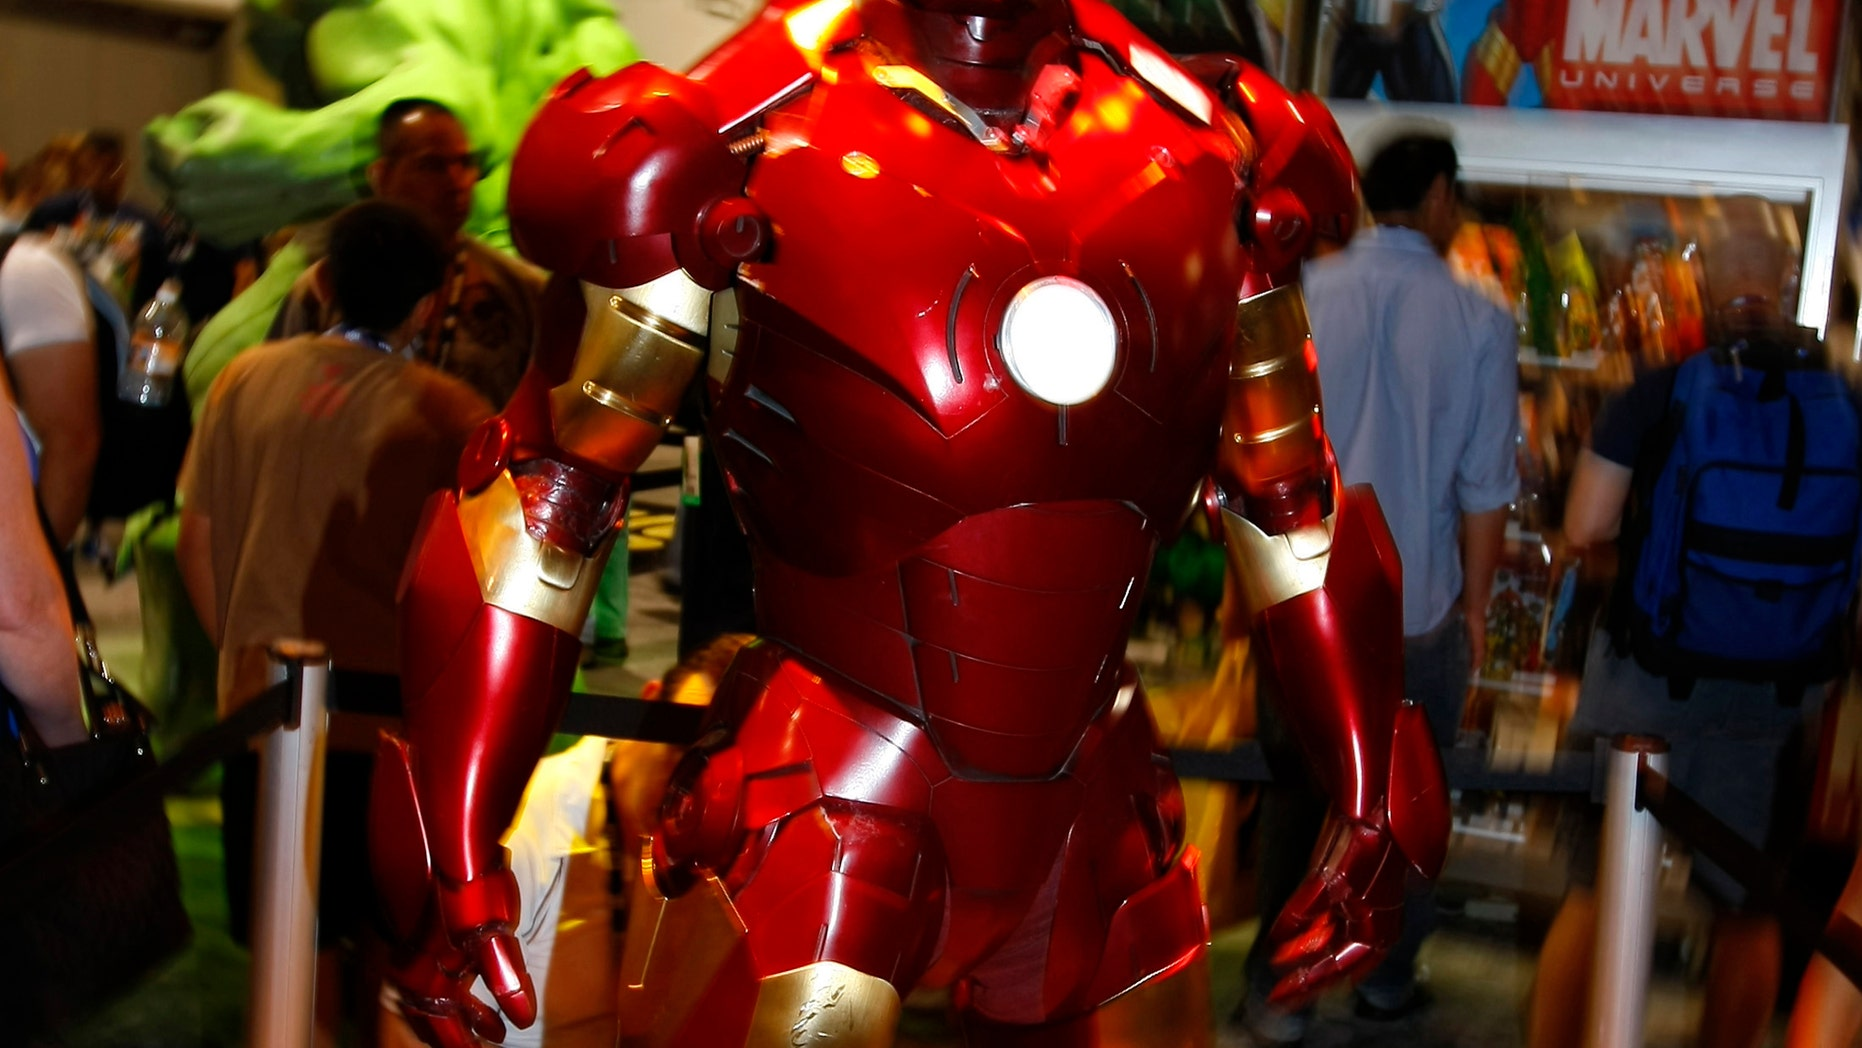 """File photo - A life size """"Iron Man"""" is on display in the Marvel booth at the 39th annual Comic Con Convention in San Diego July 24, 2008. (REUTERS/Mike Blake)"""